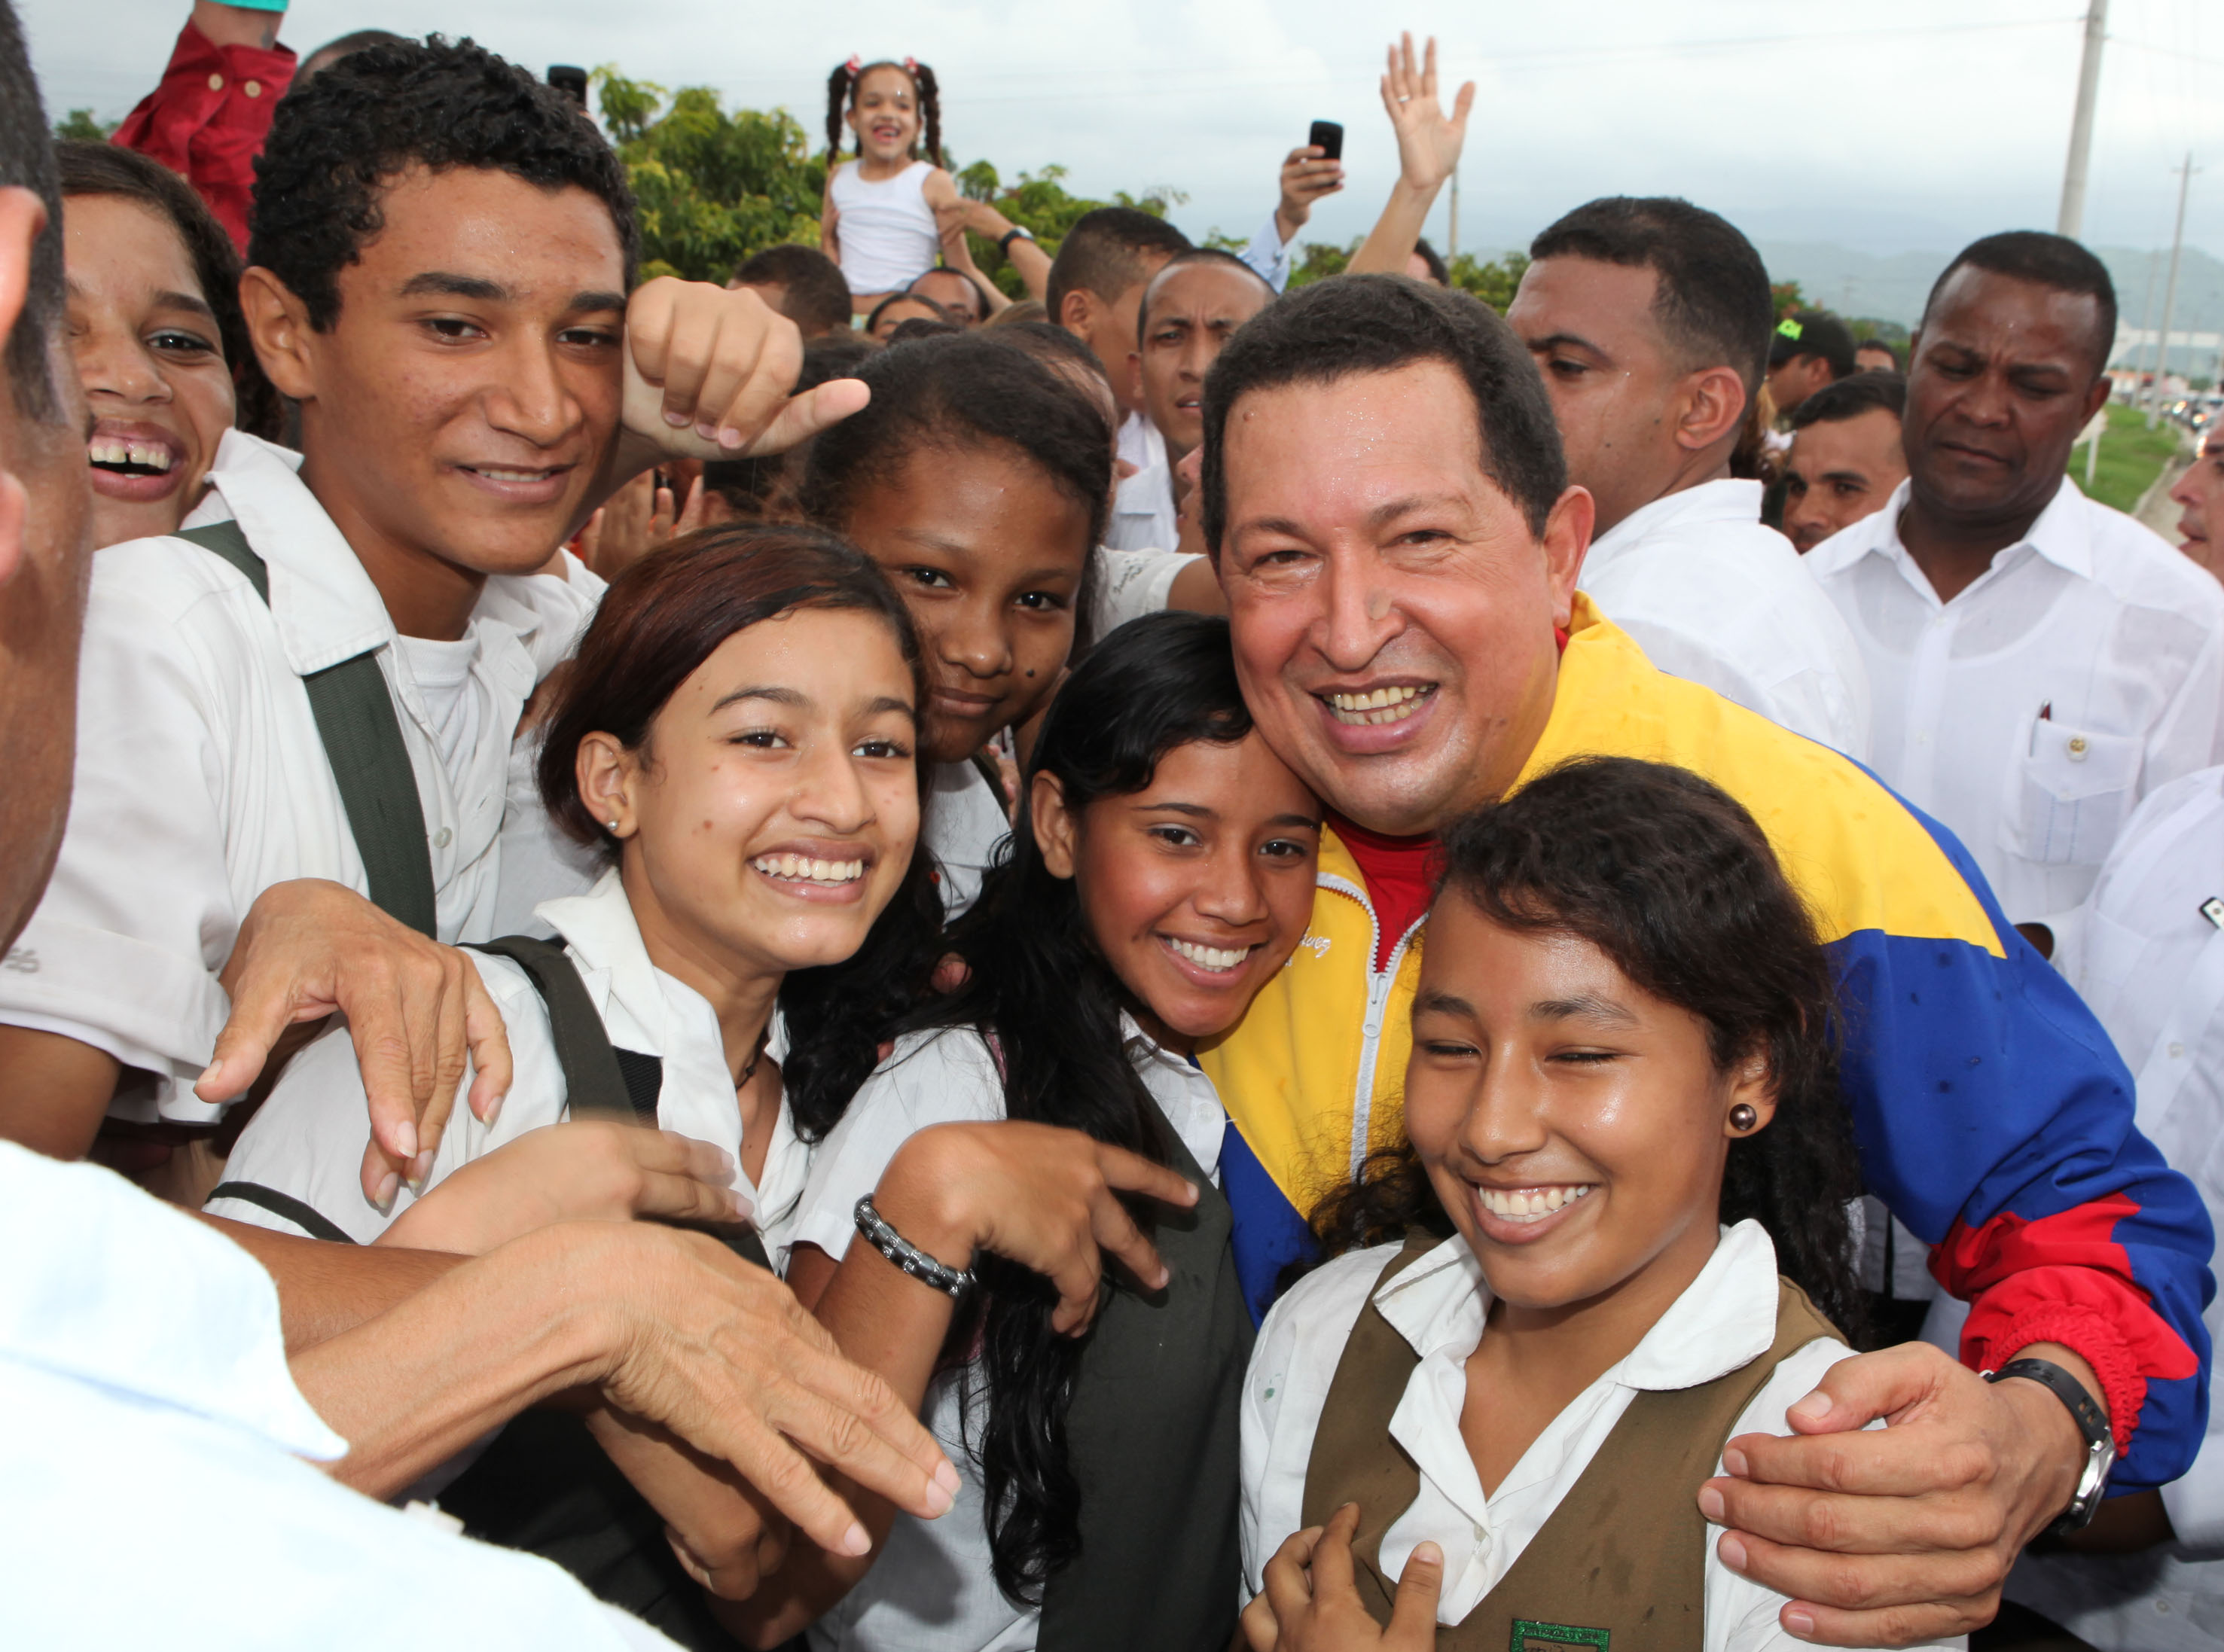 chavecito-colombian-students.jpg